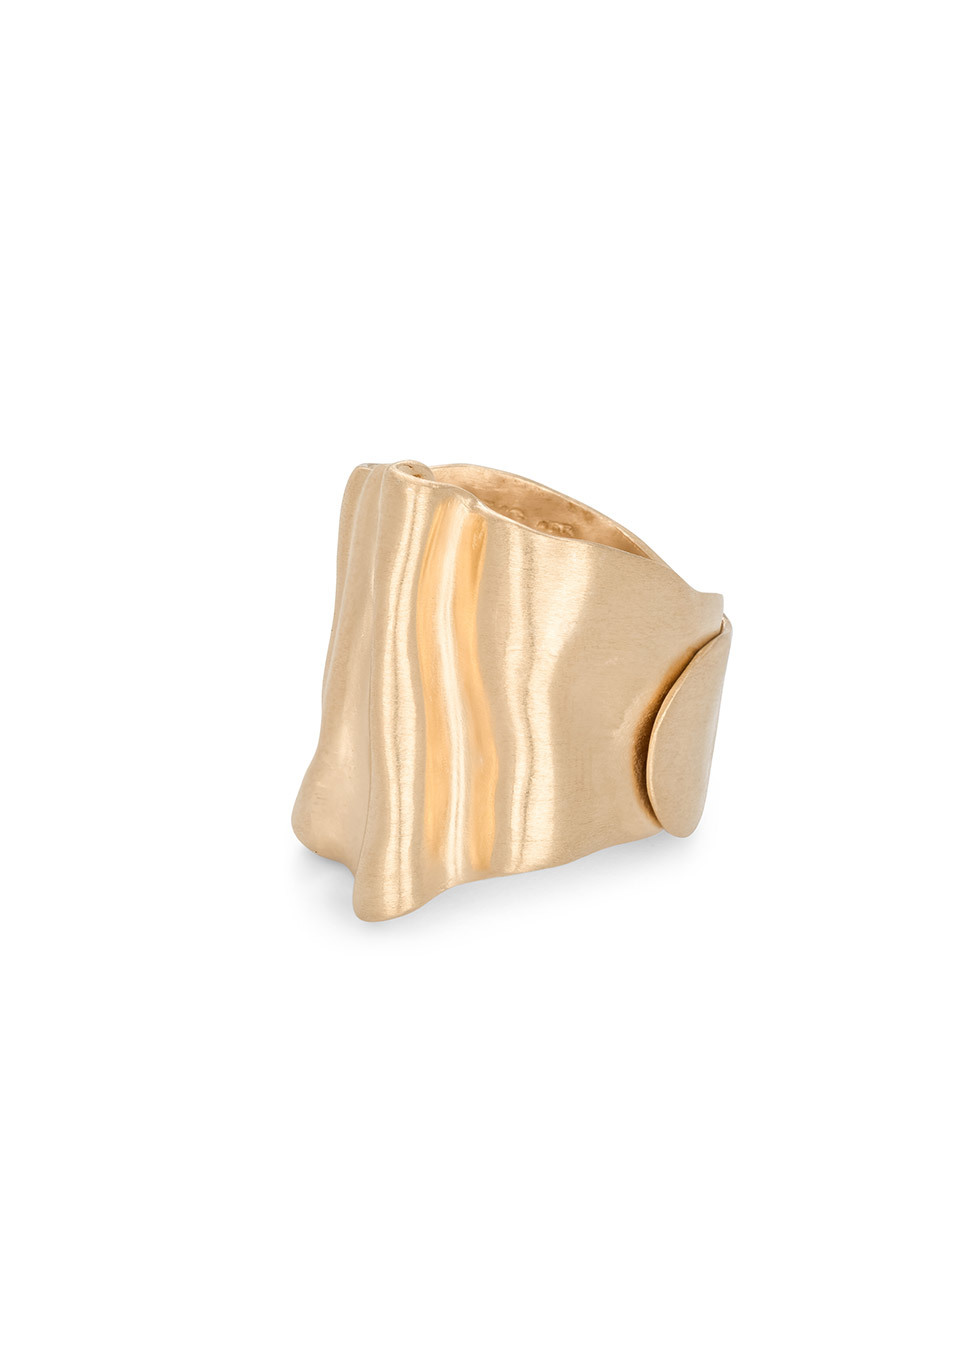 BJ0RG JEWELLERY THE BIOMORPH GOLD RING SIZE 60